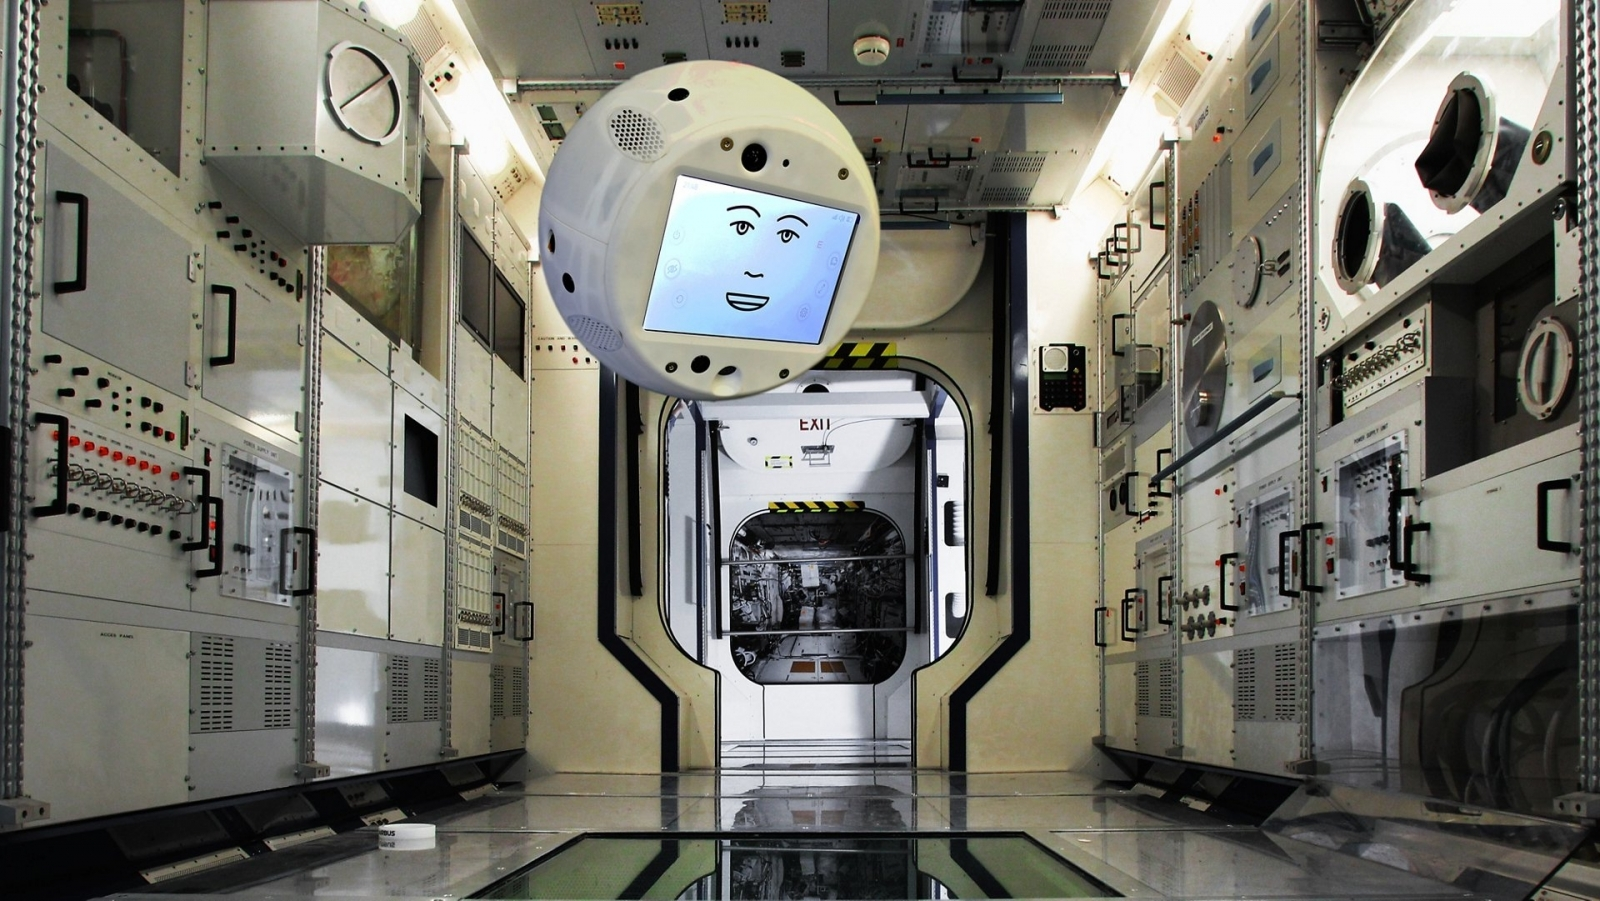 IBM Is Sending a Floating Robot Head Into Space